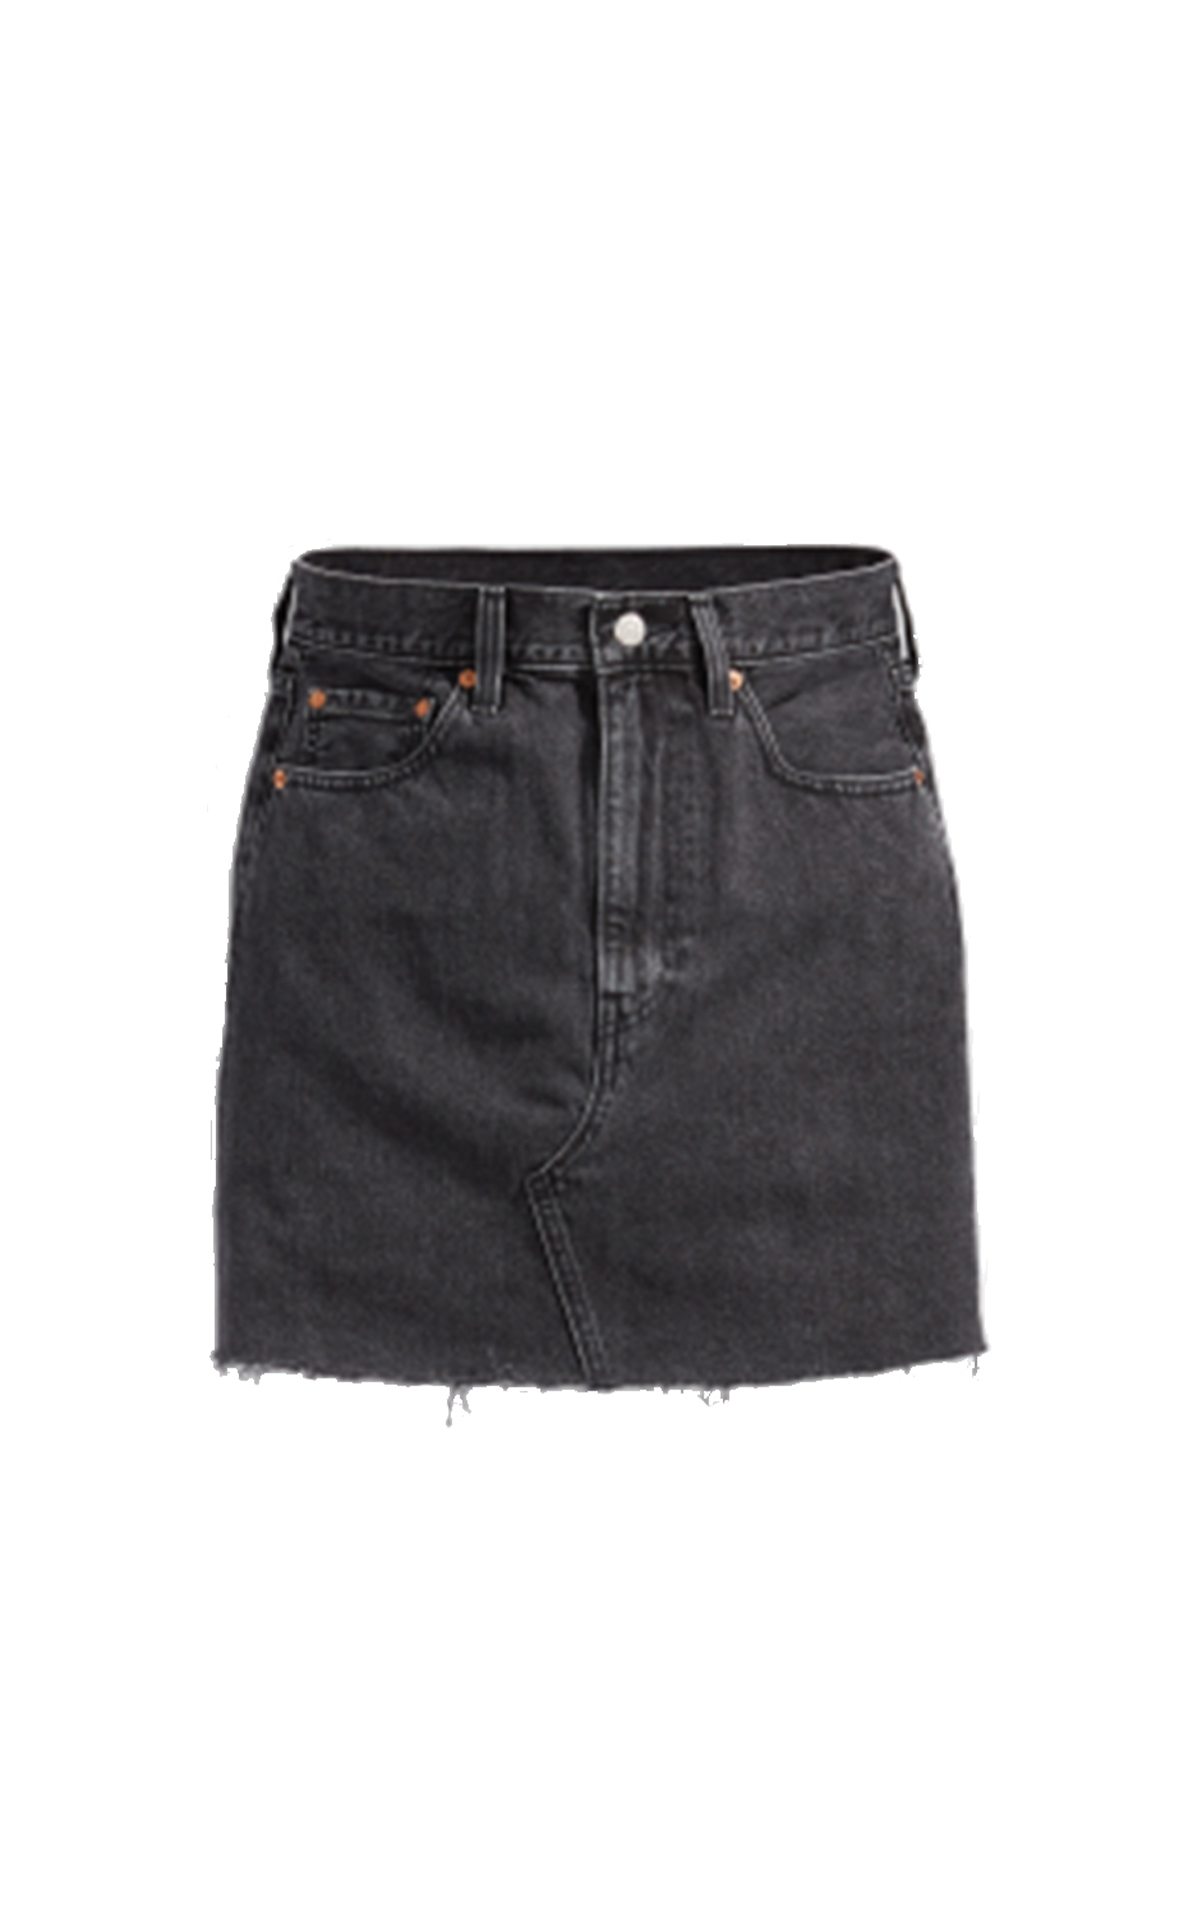 Black 502™ taper denim jeans for man Levi's